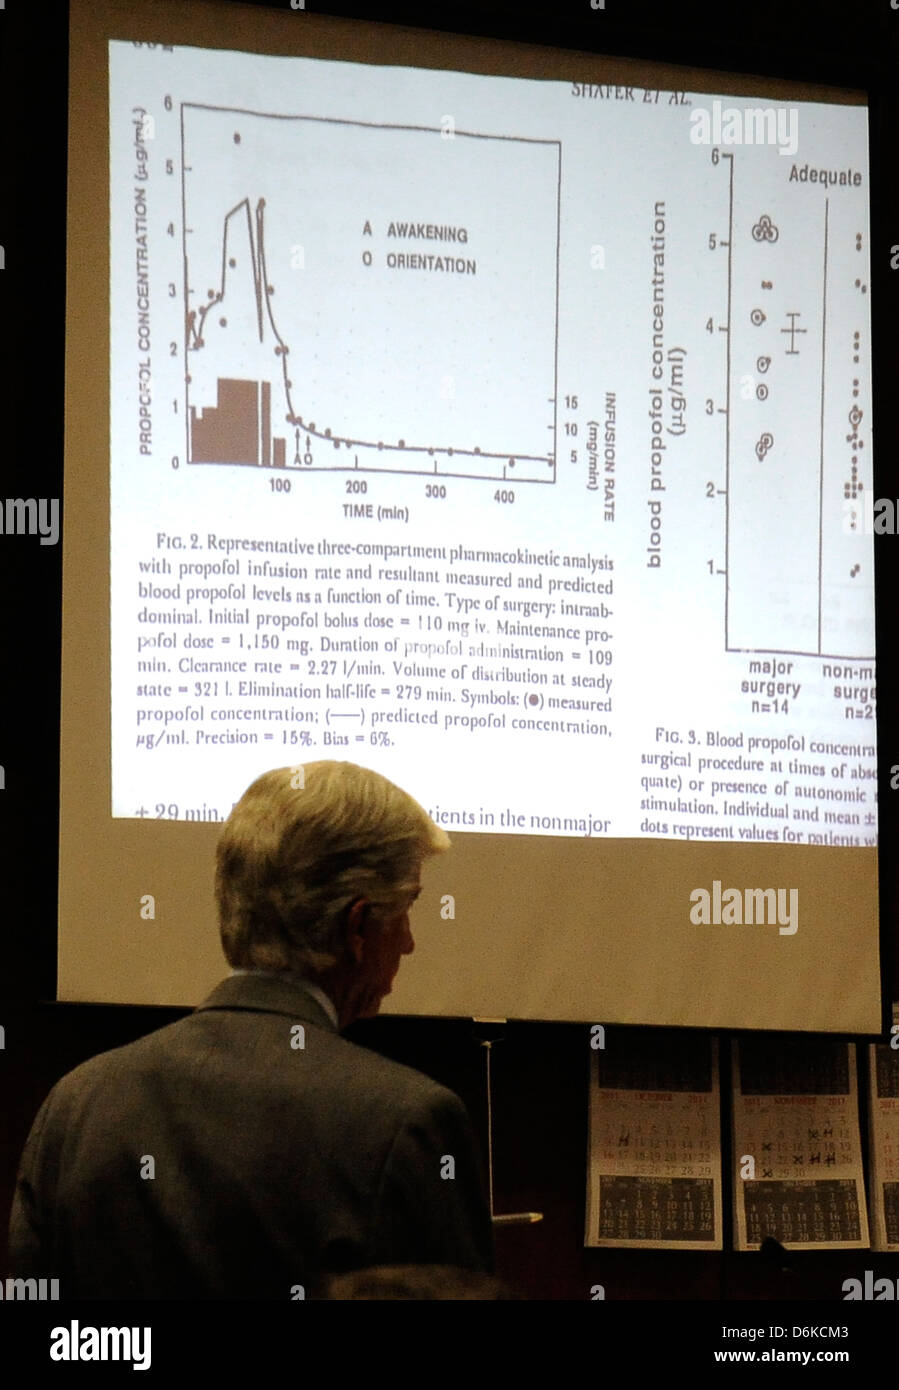 A diagram showing propofol blood levels is projected on a screen as defense attorney J. Michael Flanagan questions - Stock Image